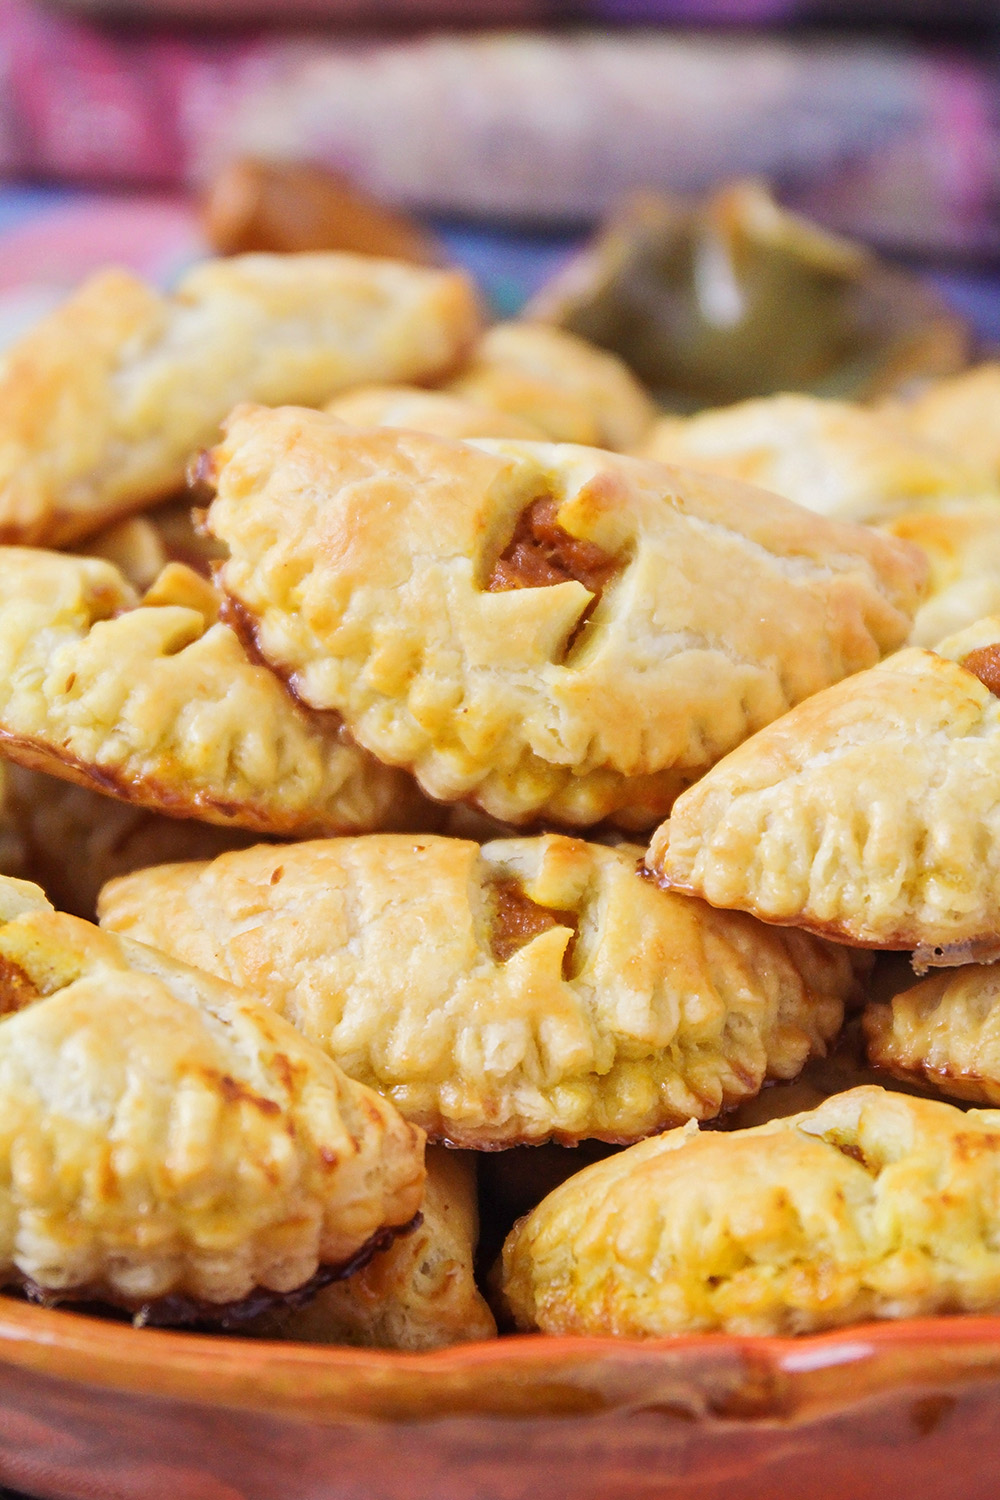 These delicious Harry Potter-inspired homemade pumpkin pasties taste just like pumpkin pie, and they're so easy to make!